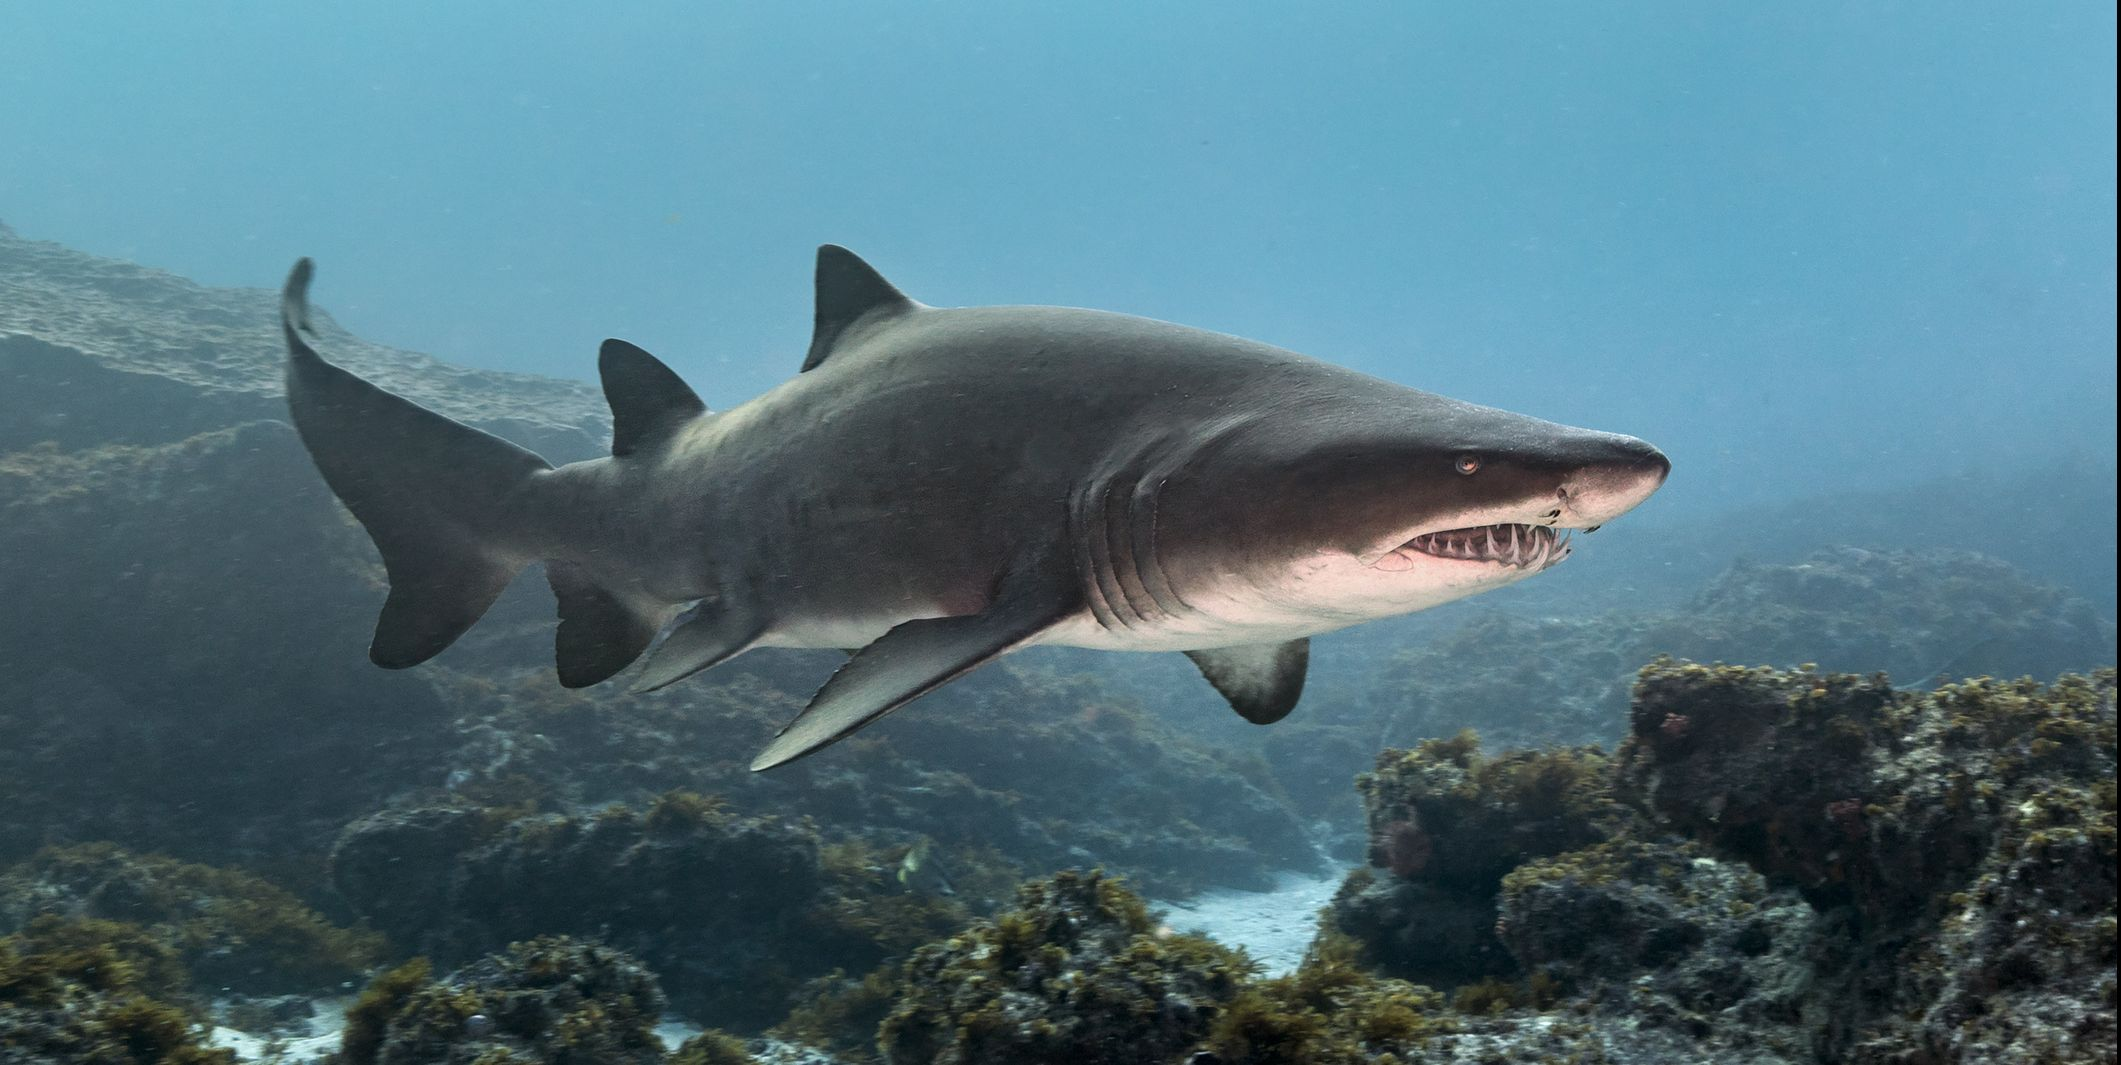 Ragged Tooth or Sand Tiger Shark (Carcharias Taurus) cruising reefs, Aliwal Shoal, South Africa